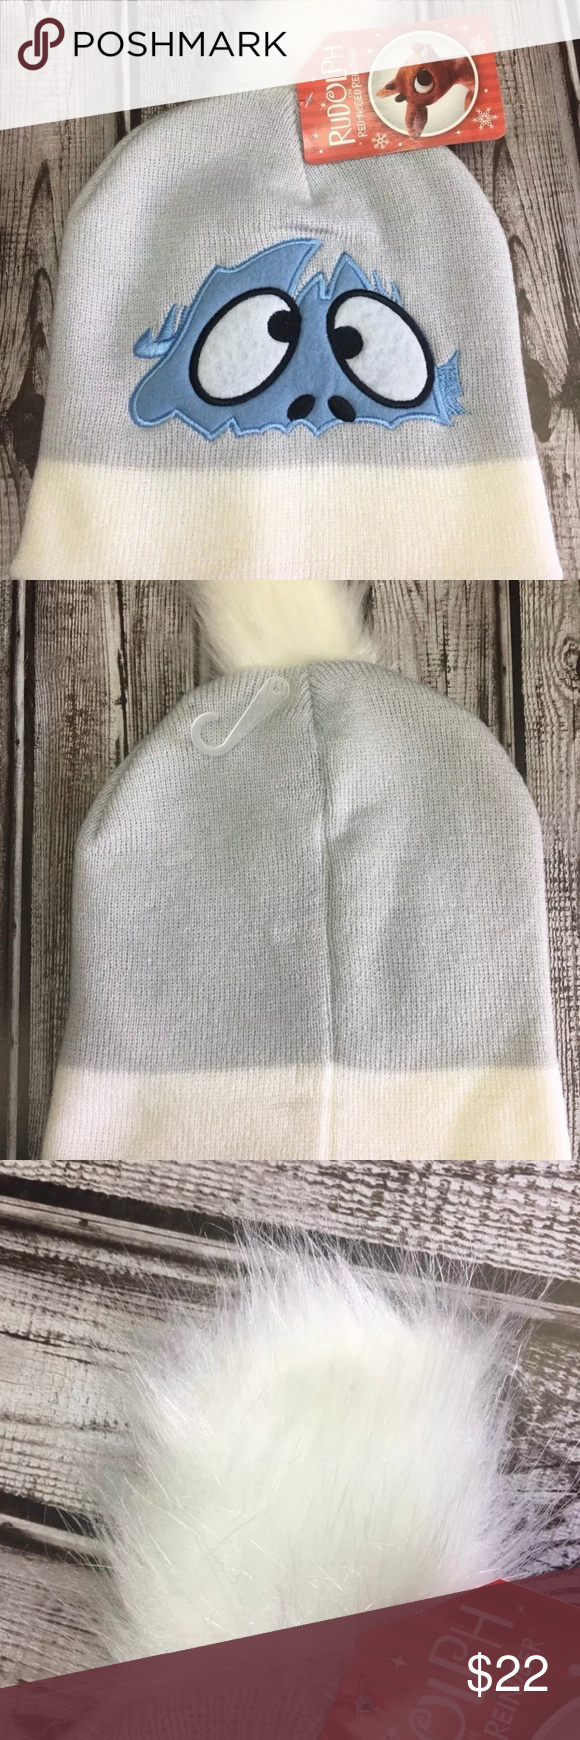 20f9fdb989283 NWT Rudolph the Red Nosed Reindeer Bumble Cap NWT Rudolph the Red Nosed  Reindeer Unisex Bumble